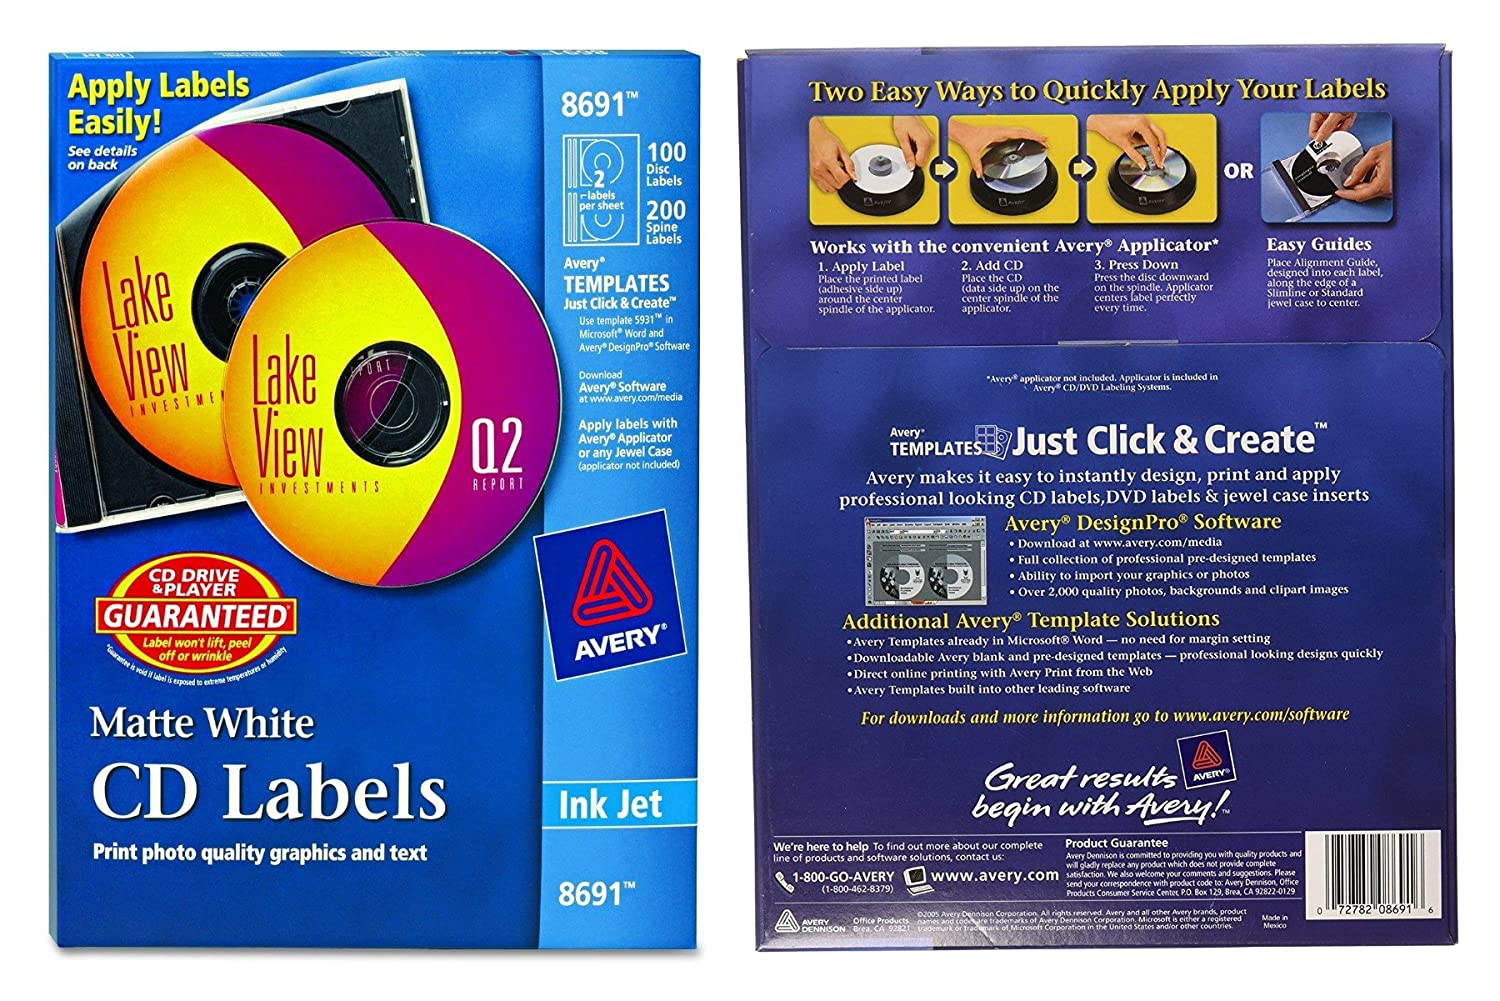 Amazon avery cd labels 100 disc labels 200 spine labels amazon avery cd labels 100 disc labels 200 spine labels 8691 printer labels office products saigontimesfo